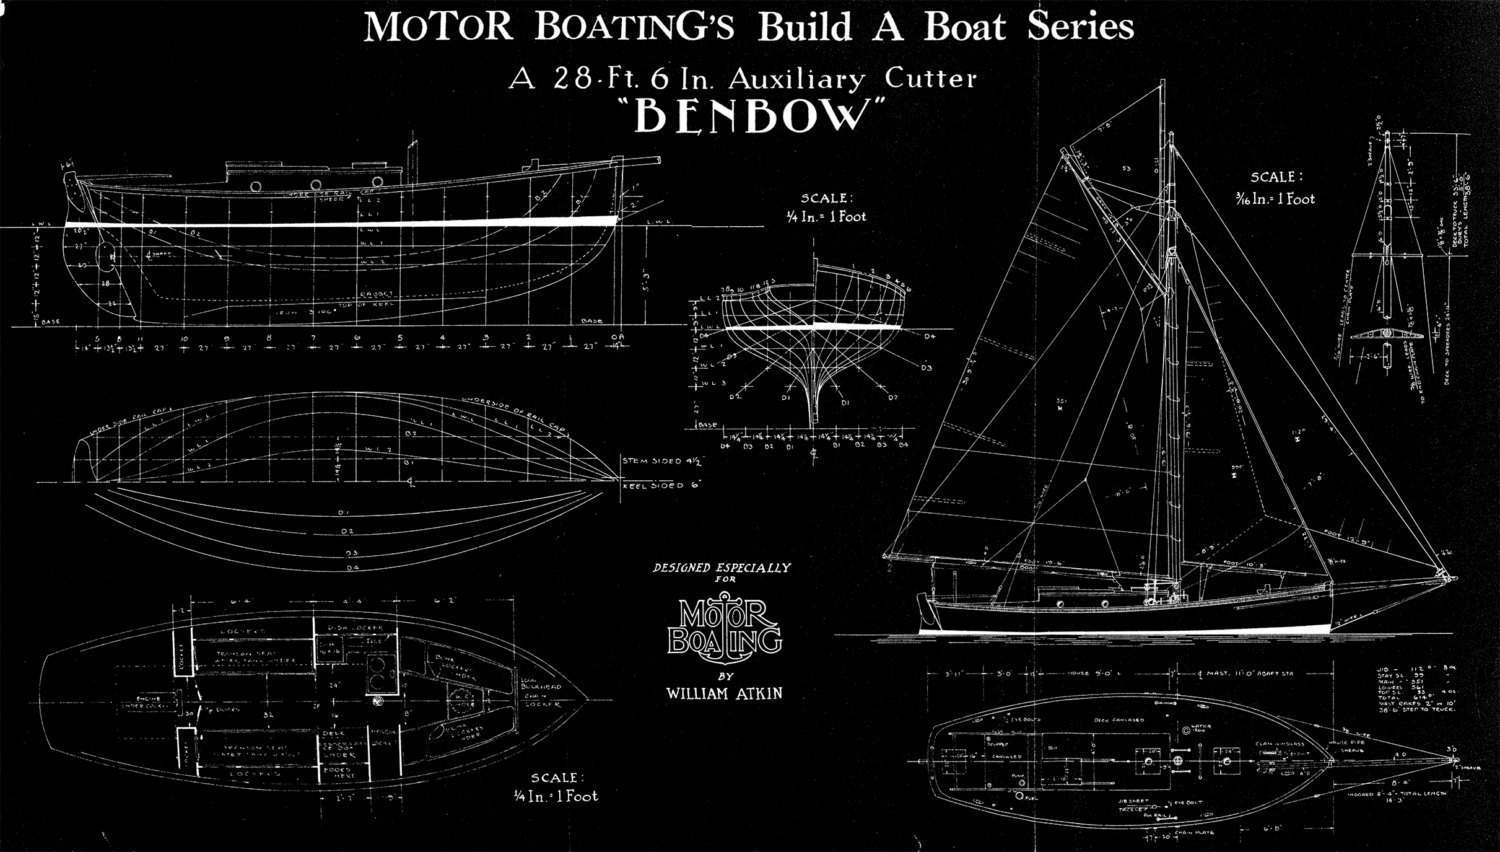 Print of vintage benbow boat blueprint from motor boatings build a print of vintage benbow boat blueprint from motor boatings build a boat series on your choice of matte paper photo paper or canvas malvernweather Choice Image